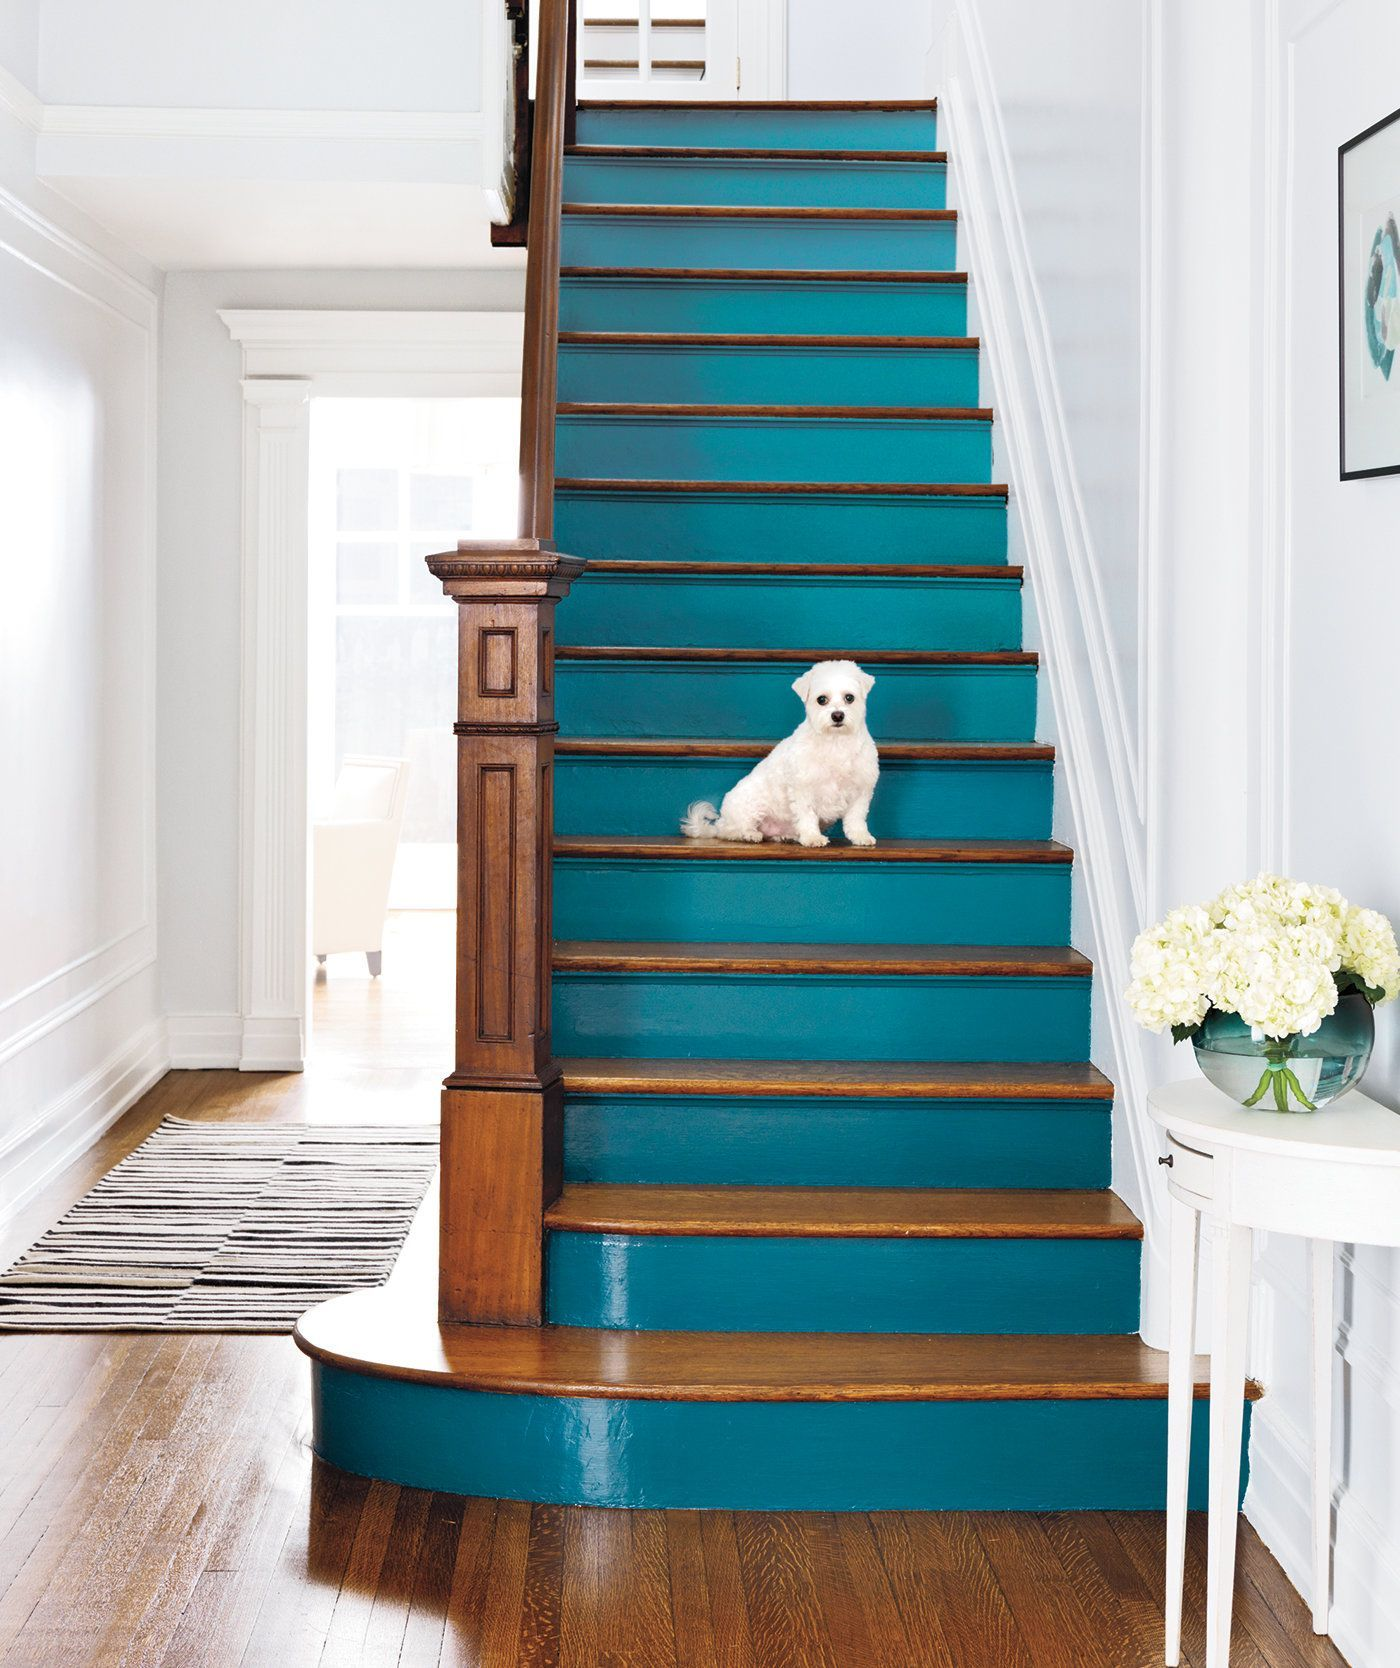 21 Attractive Painted Stairs Ideas Pictures: Pin On There's No Place Like Home